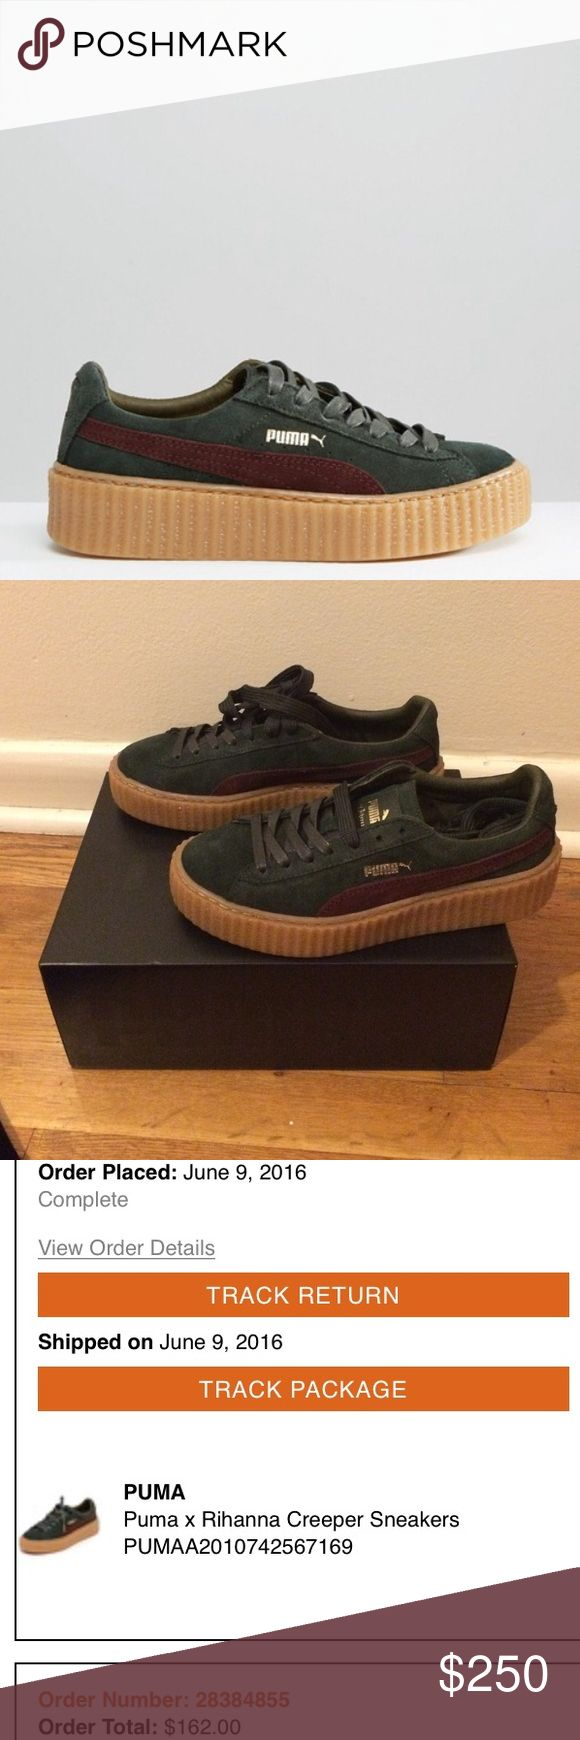 "Puma x Fenty by Suede Creepers ""Bordeaux Green"" Suede Puma x Rihanna sneakers detailed with a contrast logo. Textured ridges at the thick platform. Lace-up closure. Rubber sole. 100% authentic!!!  Purchased from Shopbop.com proof of purchase in last picture. comes with box & dust bag. Puma Shoes"